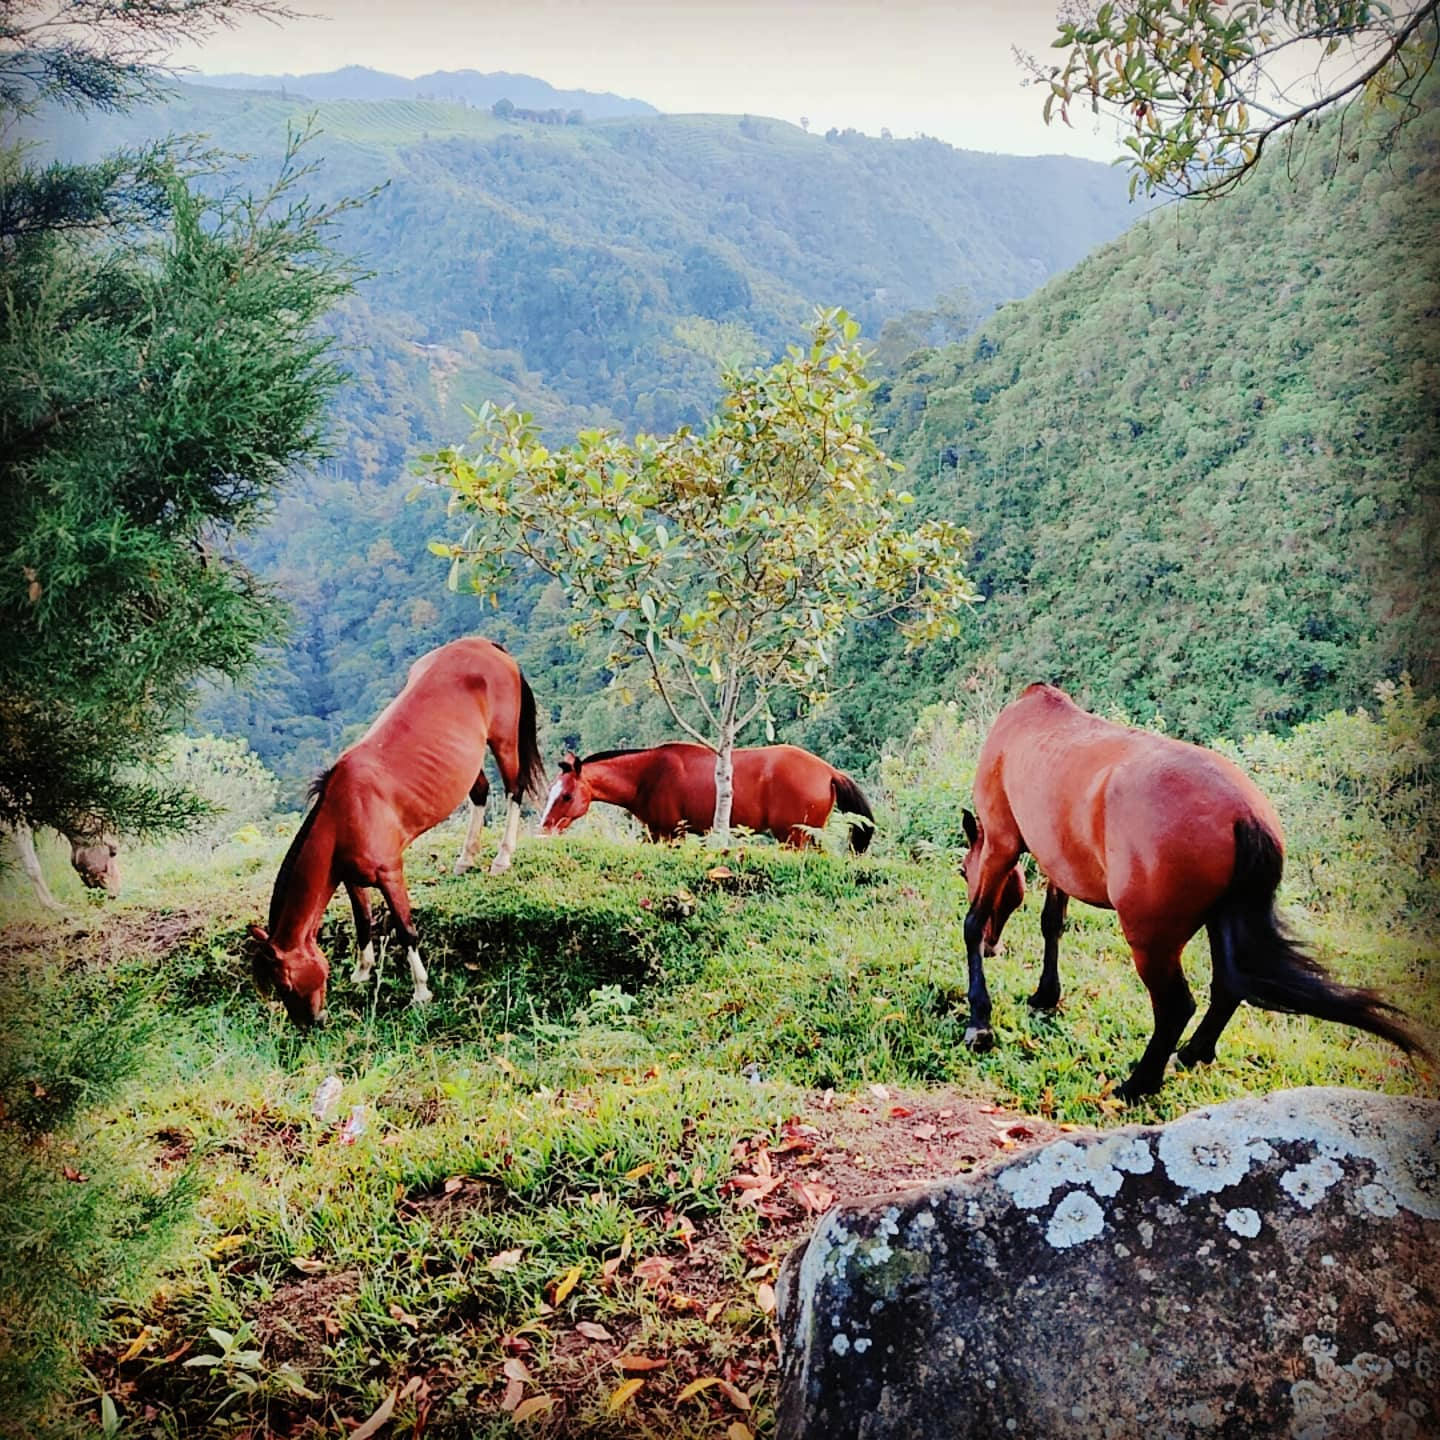 #Strolling #horse taking in the views. #Horses At ease... ⠀ #Salento at the heart of coffee triangle. North of the #Andes The source of 'one' of Colombia's most famous global exports. ⠀ ☘️ #Quarantined #Comewalkwithme #Thegrassisalwaysgreener de-tour. ⠀ 🏞️,⛰️ #mountain #mountainview #nature #viewpoint #viewpoint #vistas #vista #landscape #views #rollinghills #countryside #escapethecity ⠀ ️ #blueskies #sunnydays ⠀ 🇨🇴🇨🇴🇨🇴 #Colombiacalling Peace love & #adventures from #Colombia #travel #wanderlust #globetrotting #globetrekker #digitalnomad